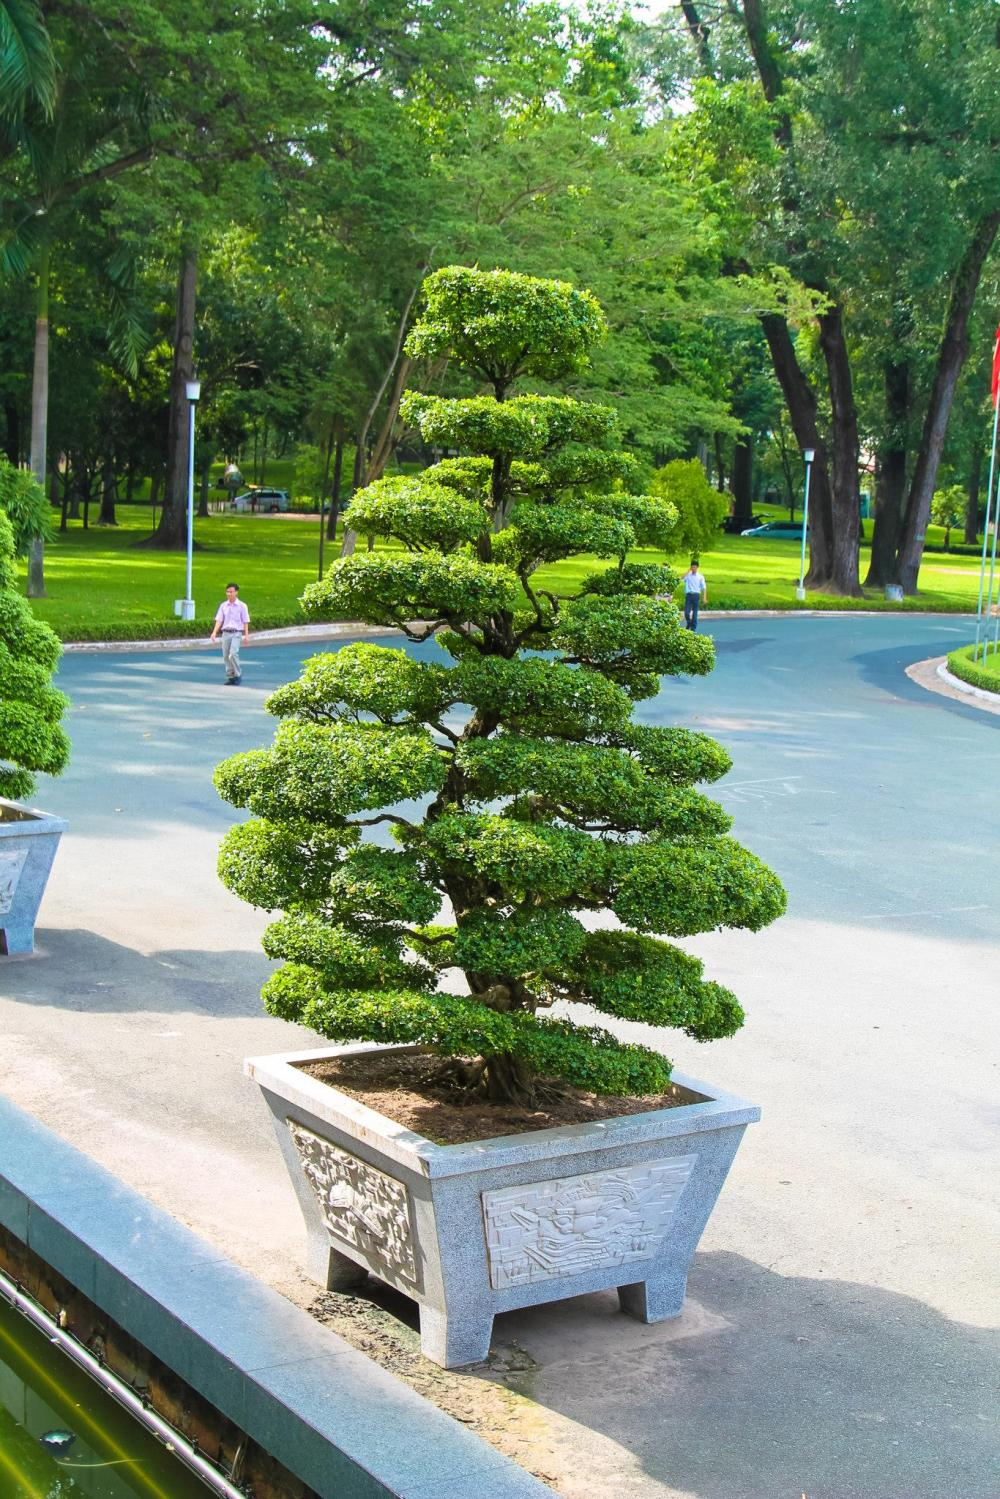 Photo Diary: Visiting Independence Palace in Saigon, Vietnam (18)